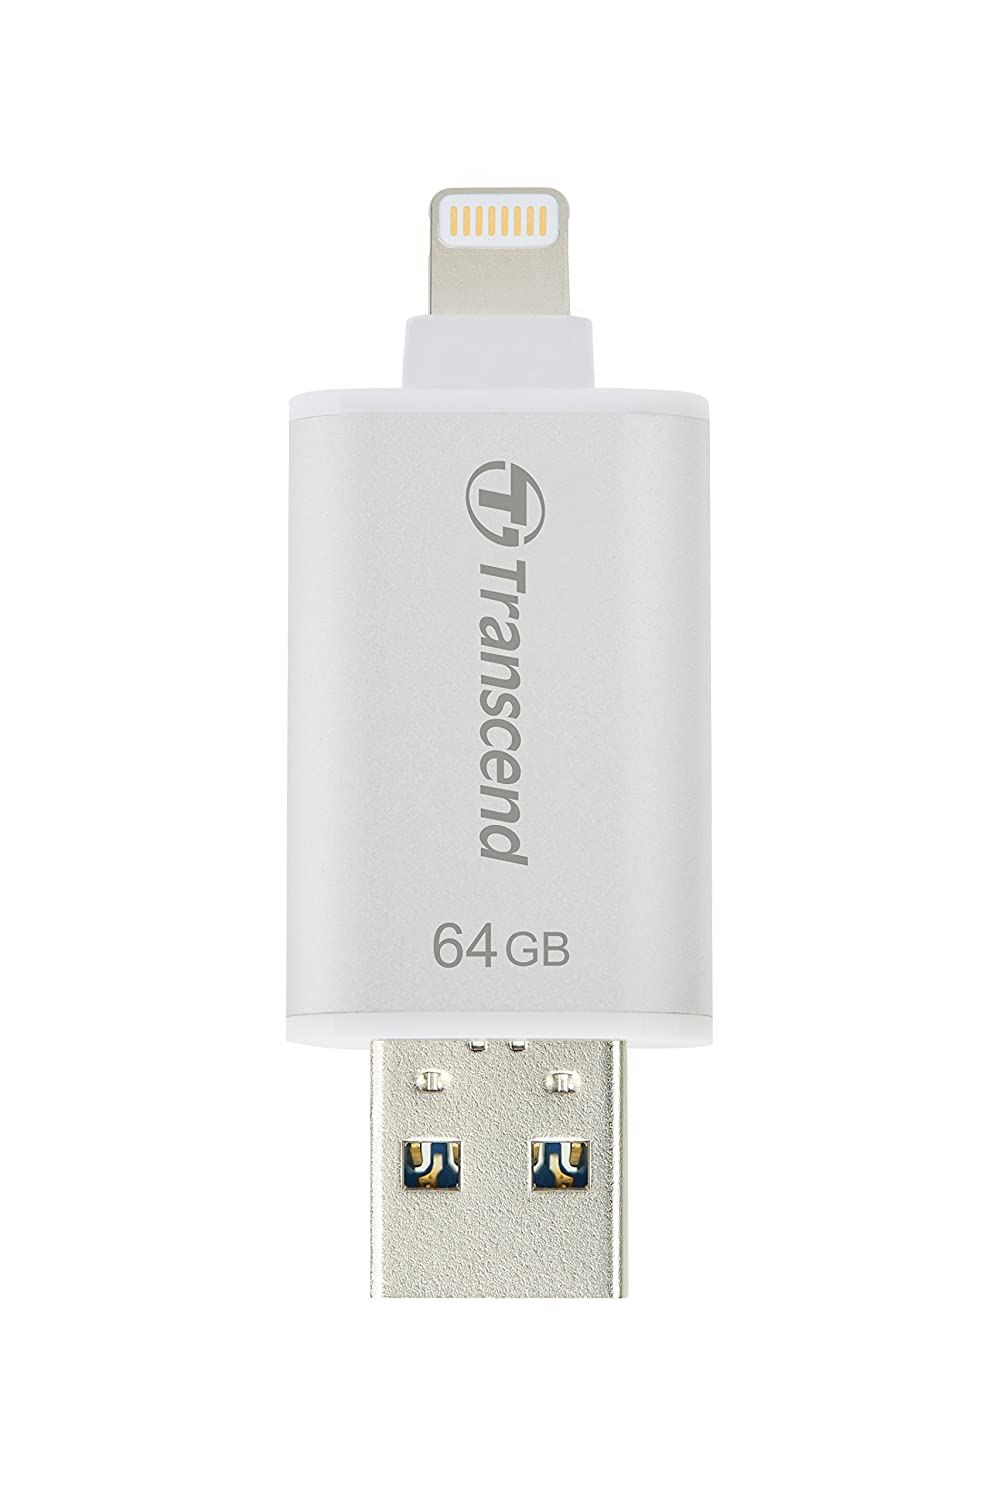 Transcend USB Lightning Stick amazon